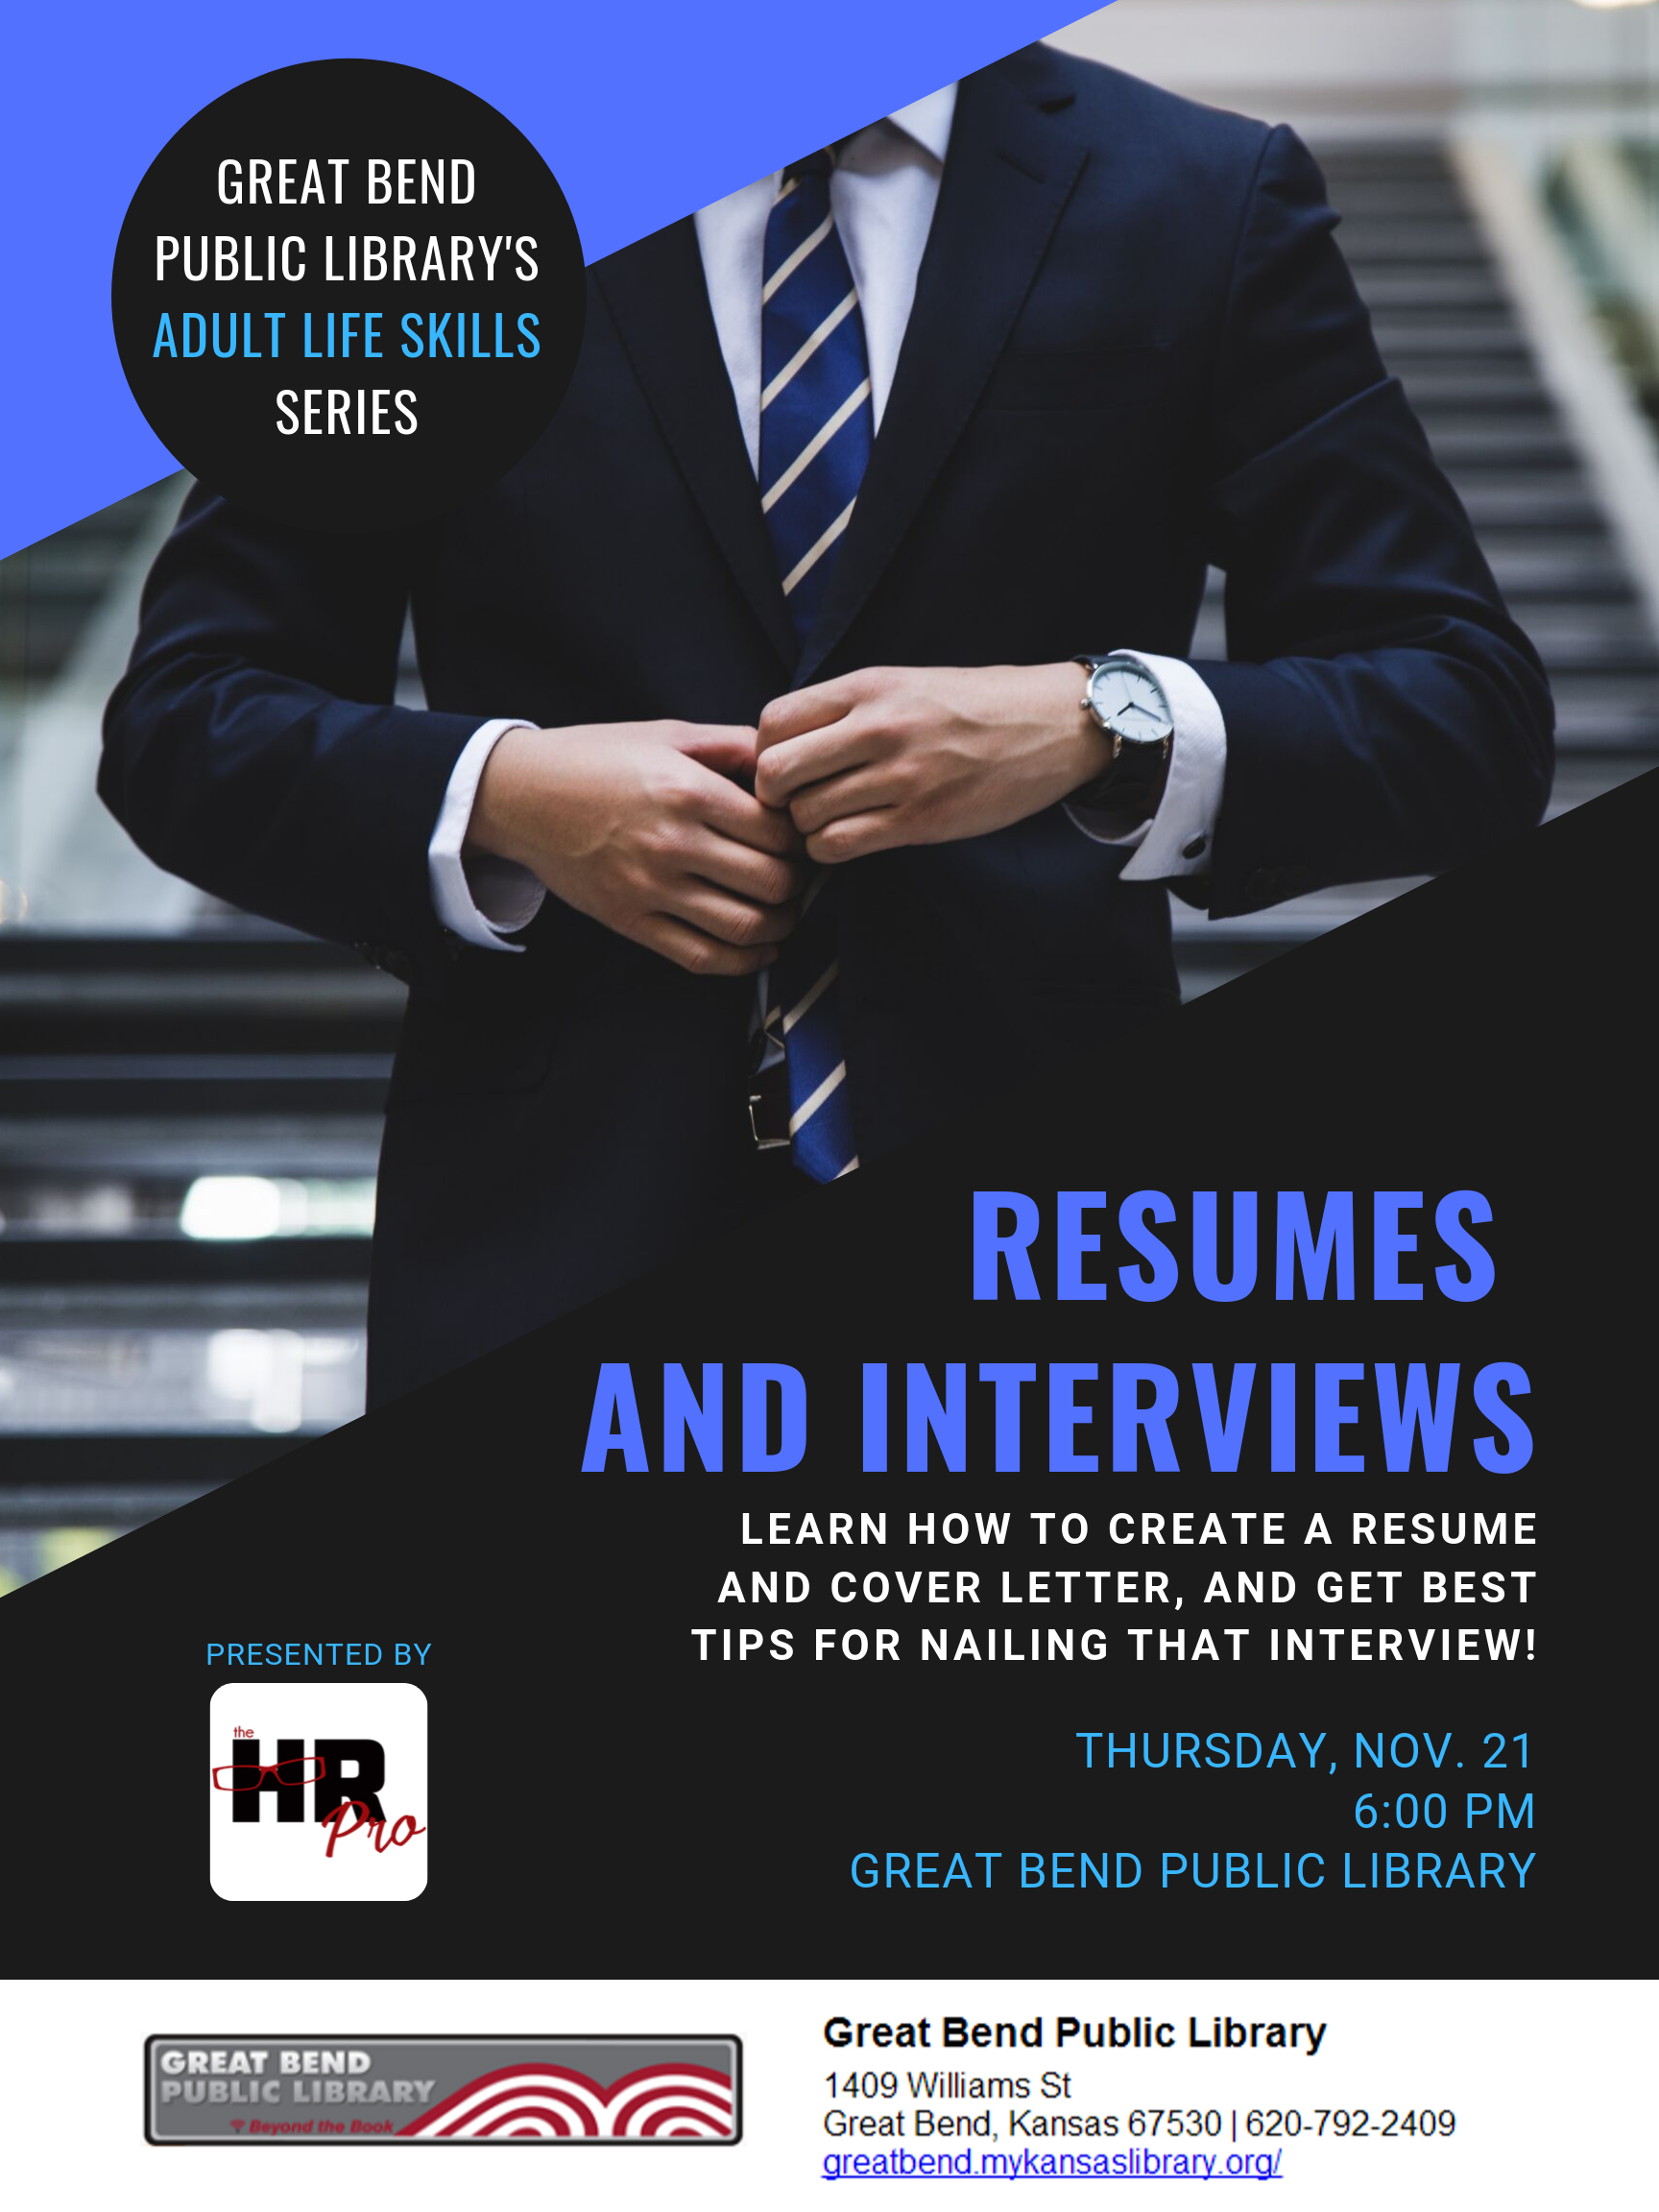 Resumes and Interviews (Adult Life Skills series)